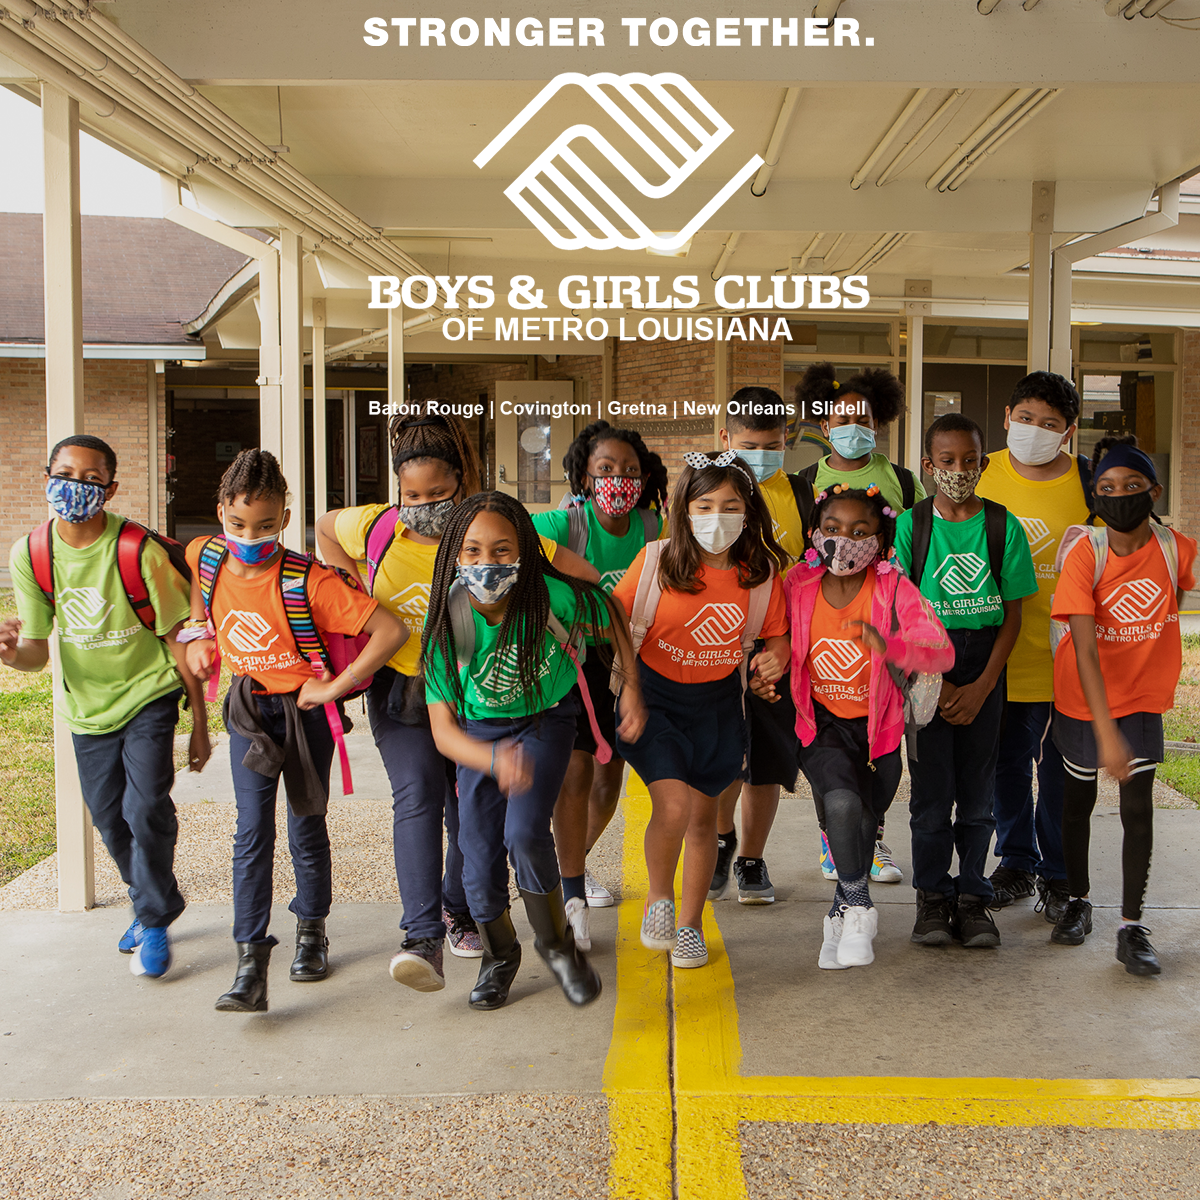 Boys & Girls Clubs in Baton Rouge, Covington, Gretna, New Orleans & Slidell Join Forces to Create Regional Organization